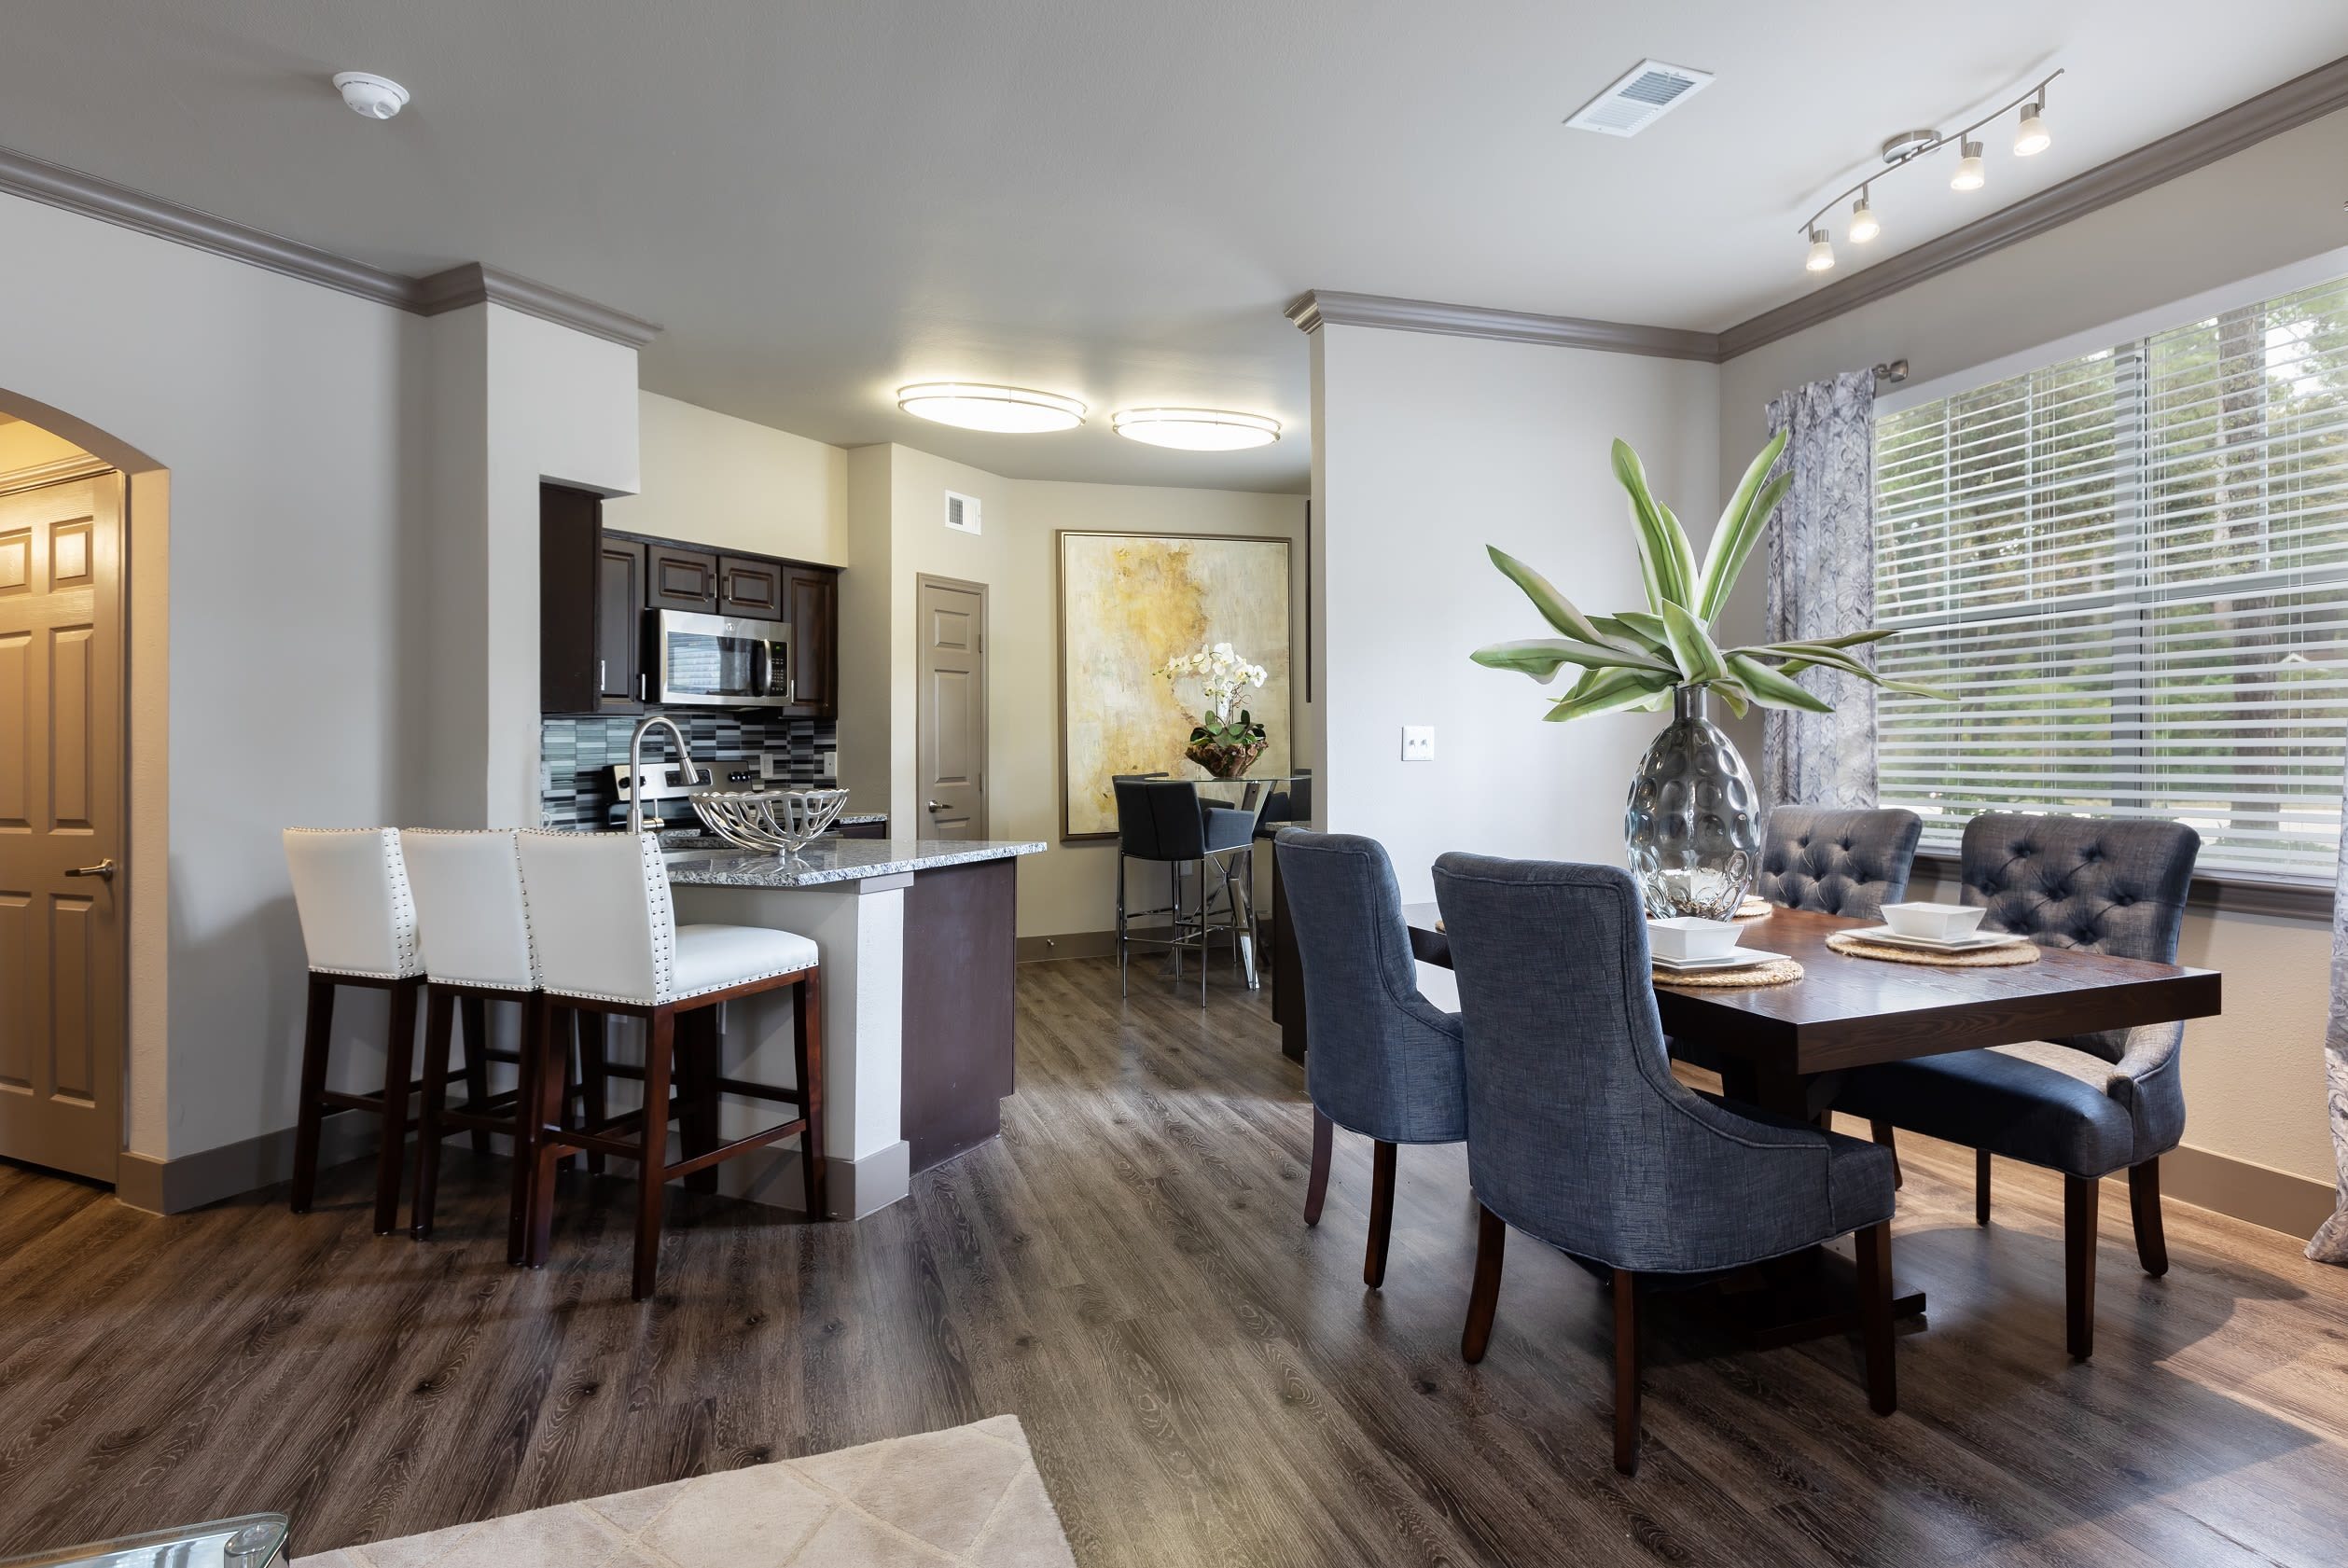 View virtual tour for 2 bedroom 2 bathroom suite at Artisan at Lake Wyndemere in The Woodlands, Texas